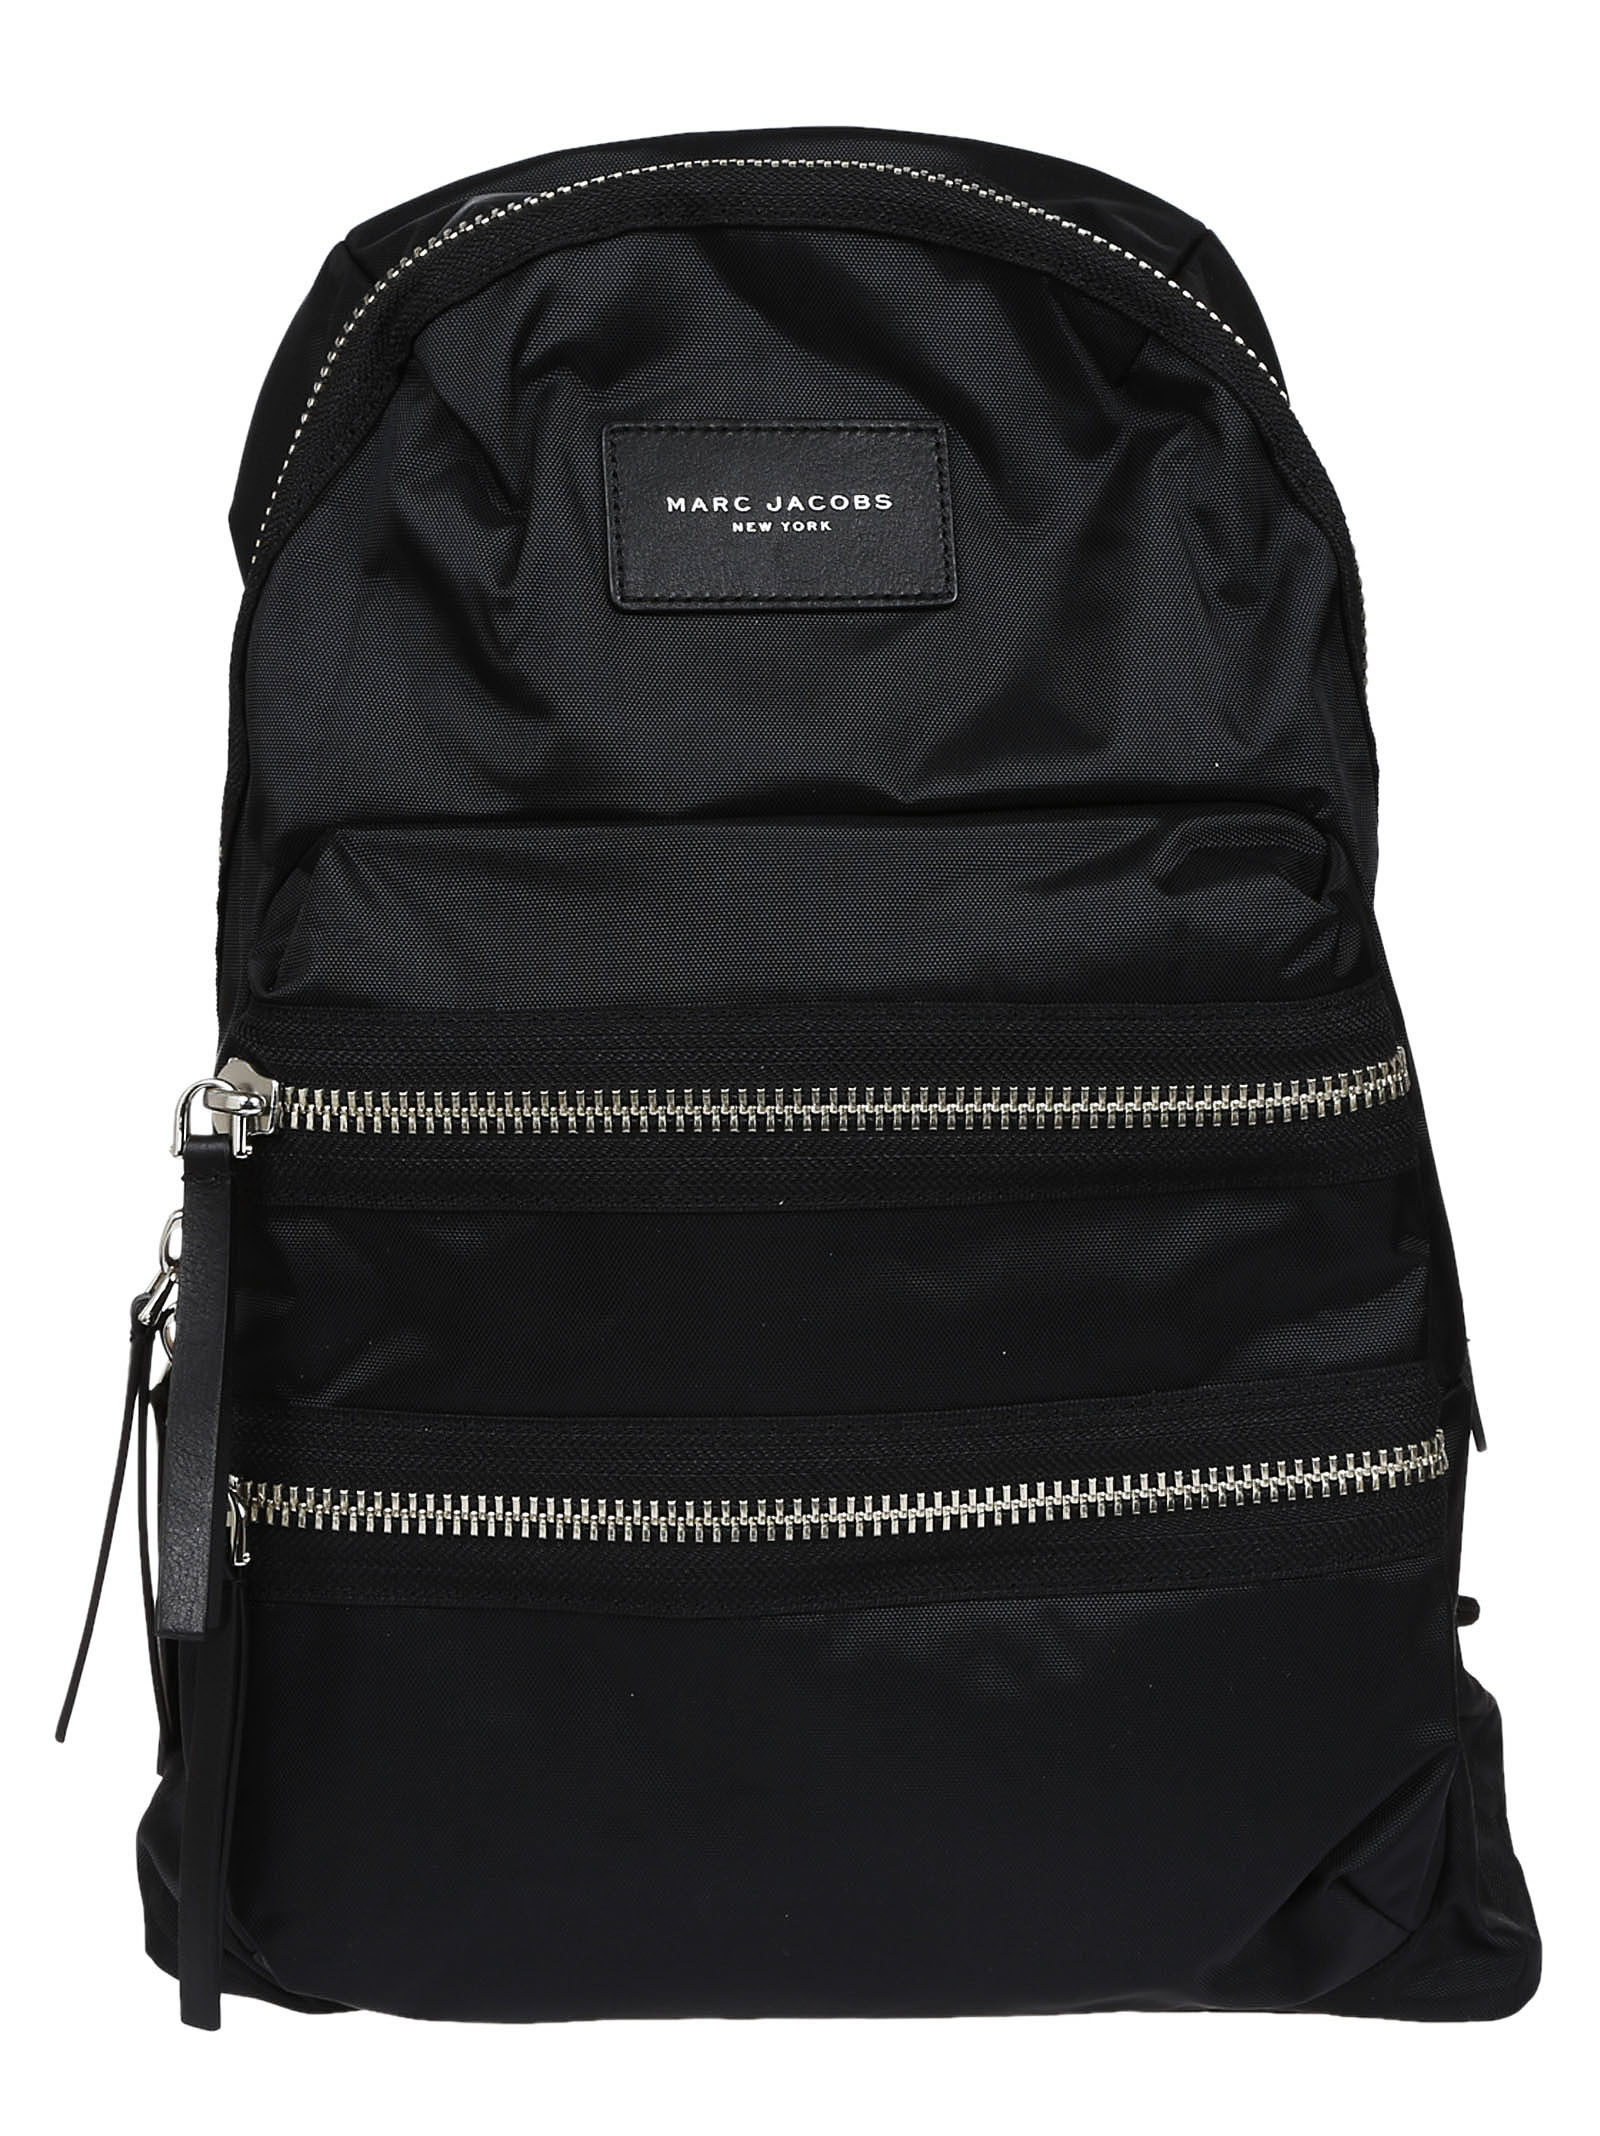 marc jacobs female marc jacobs biker backpack